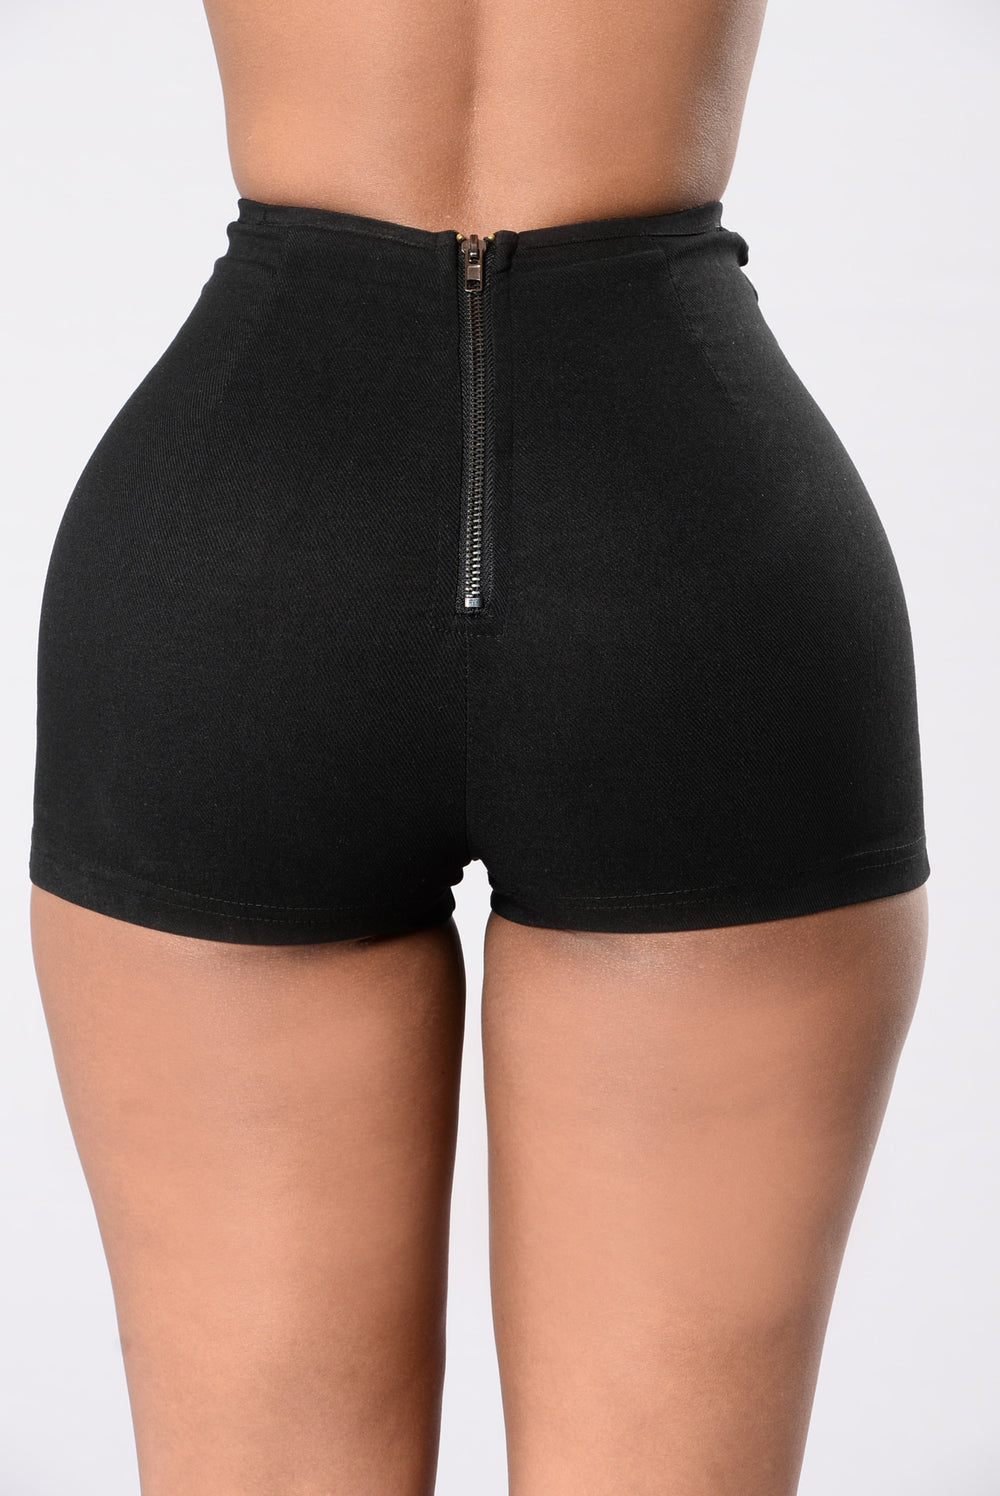 Call From Richie Shorts - Black